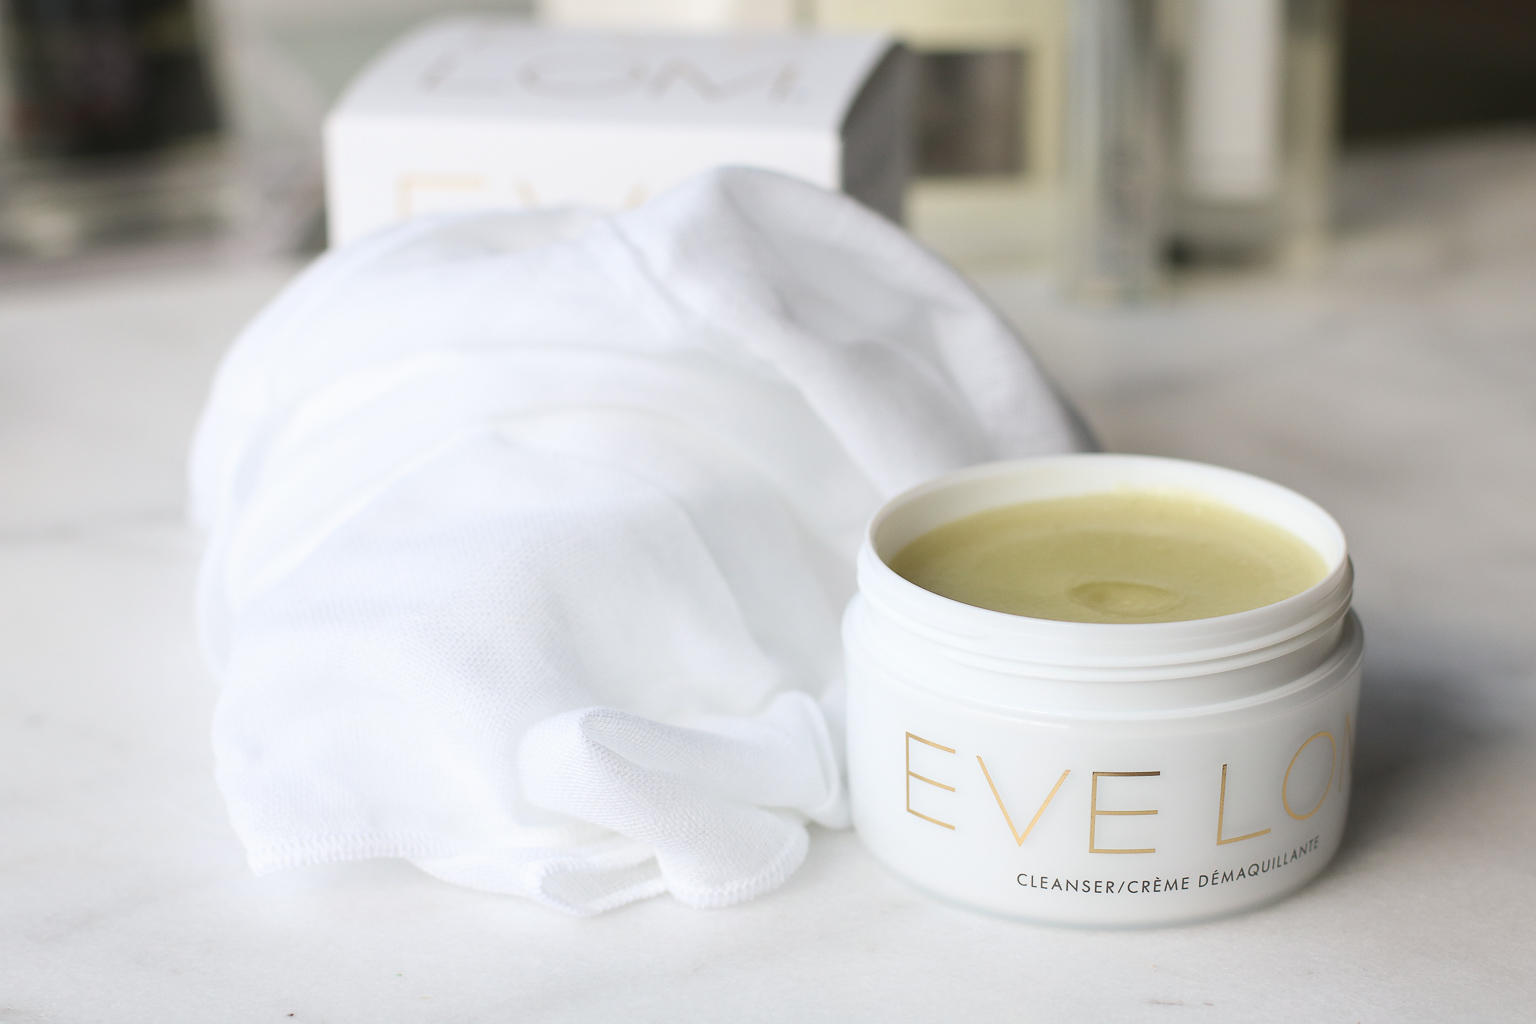 Eve Lom Cleanser is the perfect way to remove your makeup and keep your skin hydrated, especially in the winter months | Style Domination